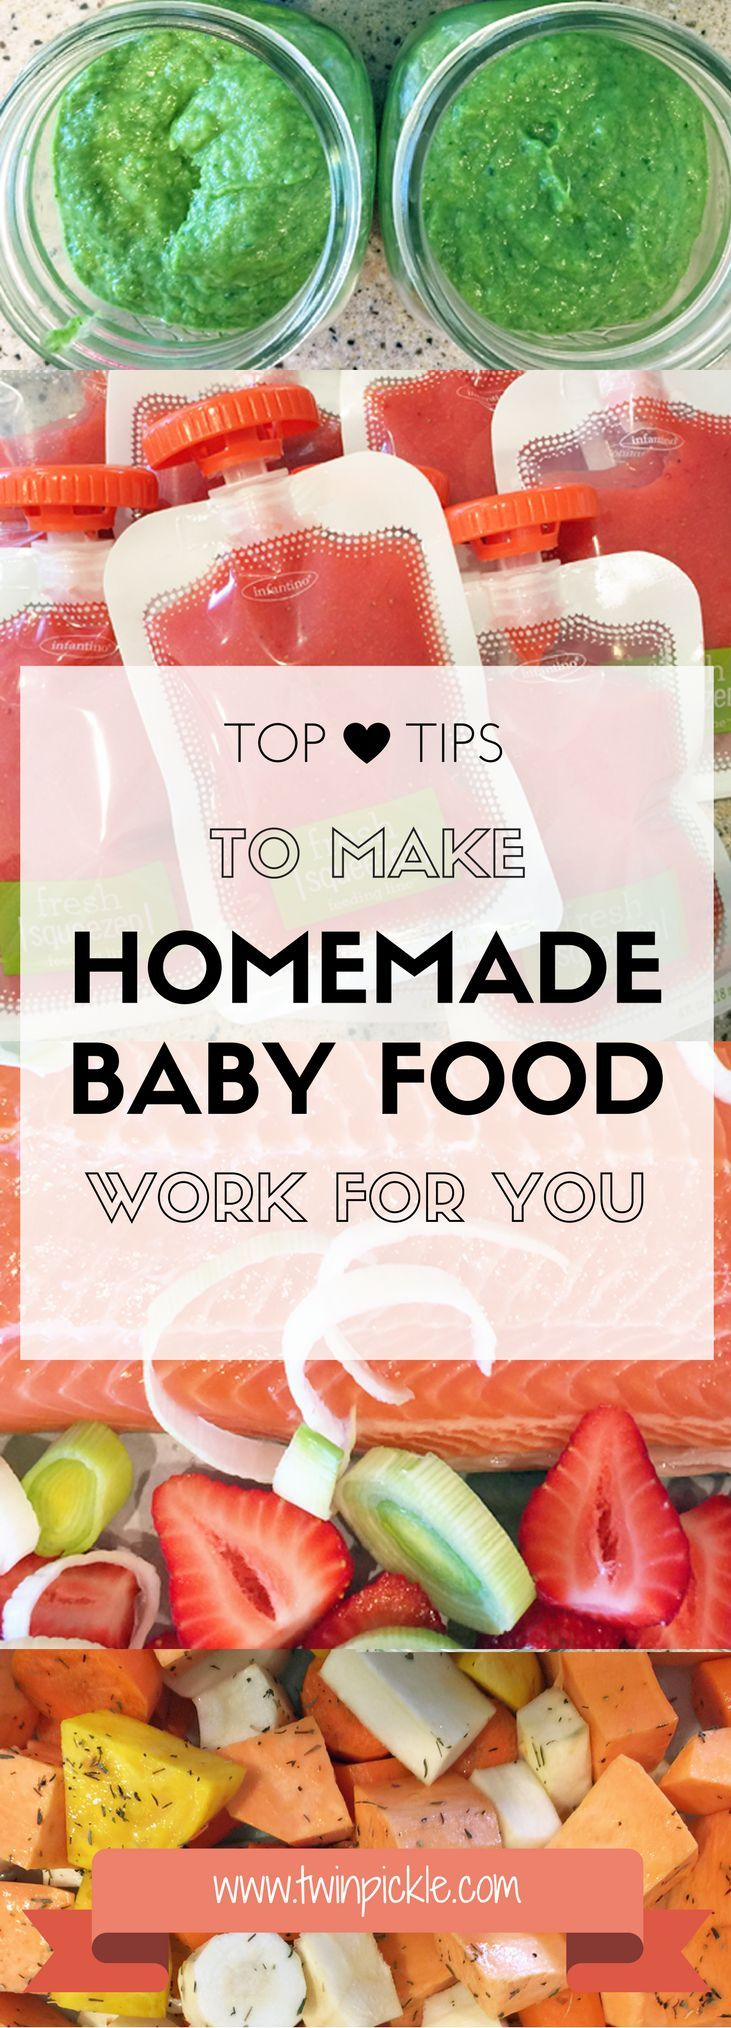 We all dream of giving Baby the perfect diet, but sometimes it's hard to keep on top of it all. Tips to keep it simple, understand your limits and find what works FOR YOU! #parenting #babies #babyf